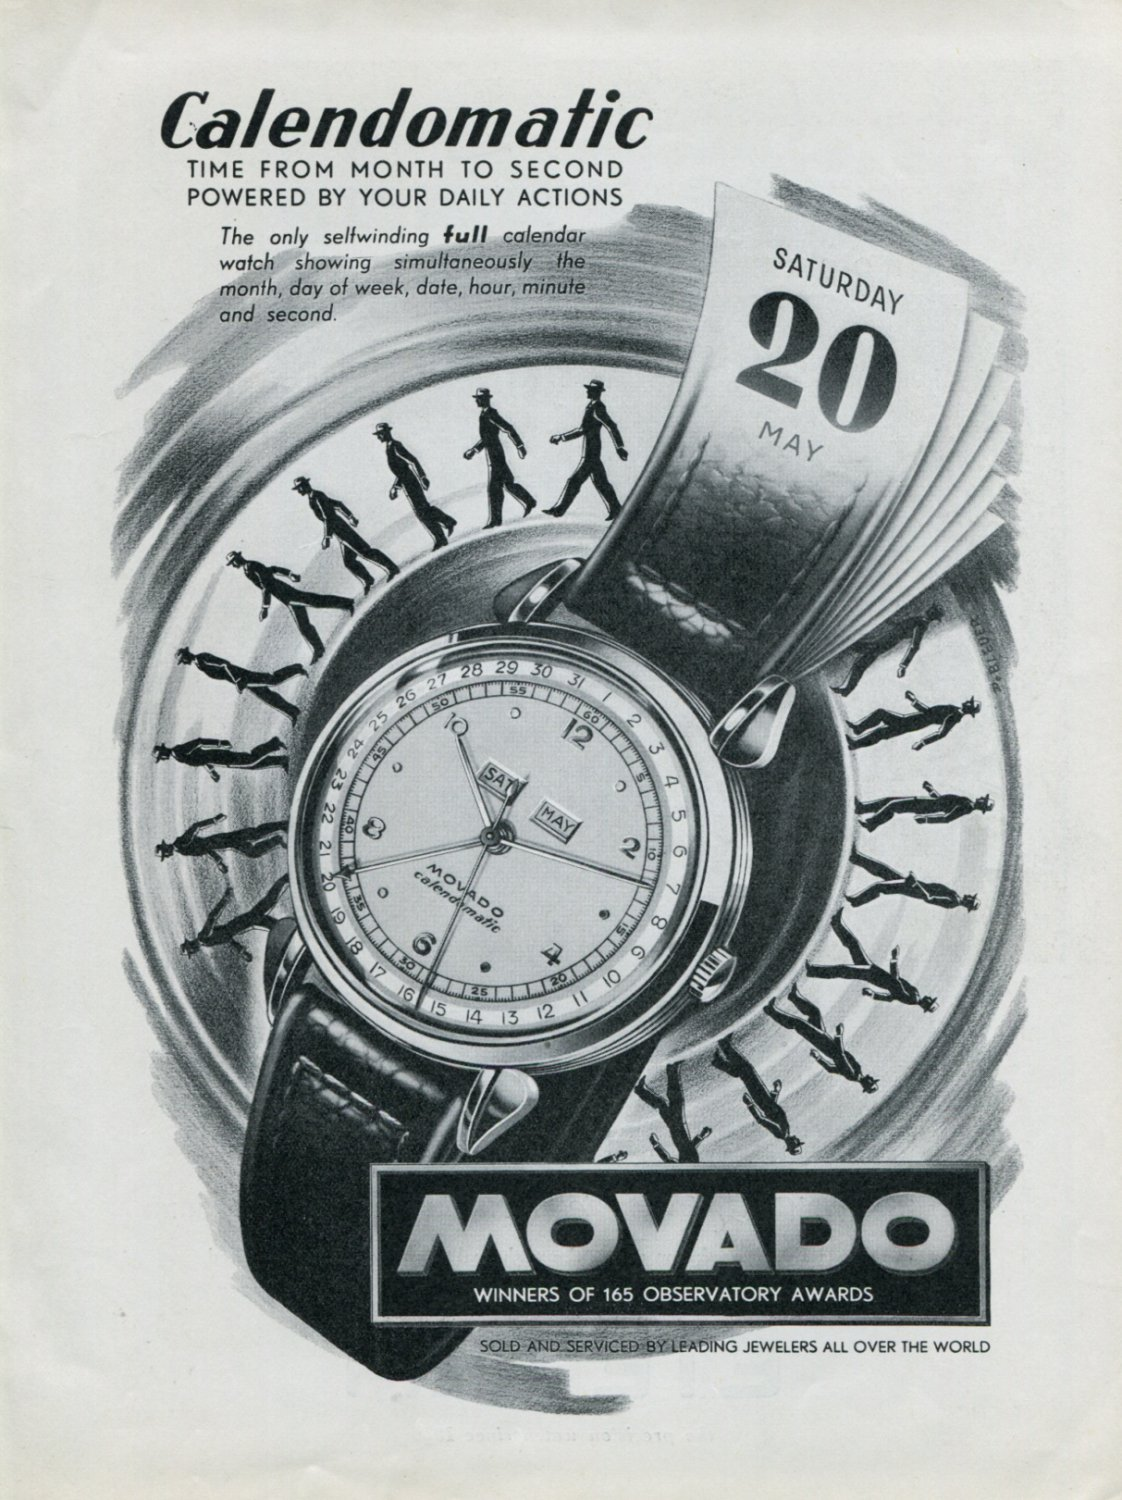 Vintage 1948 Movado Calendomatic Watch Advert Swiss Print Ad Publicite Suisse CH